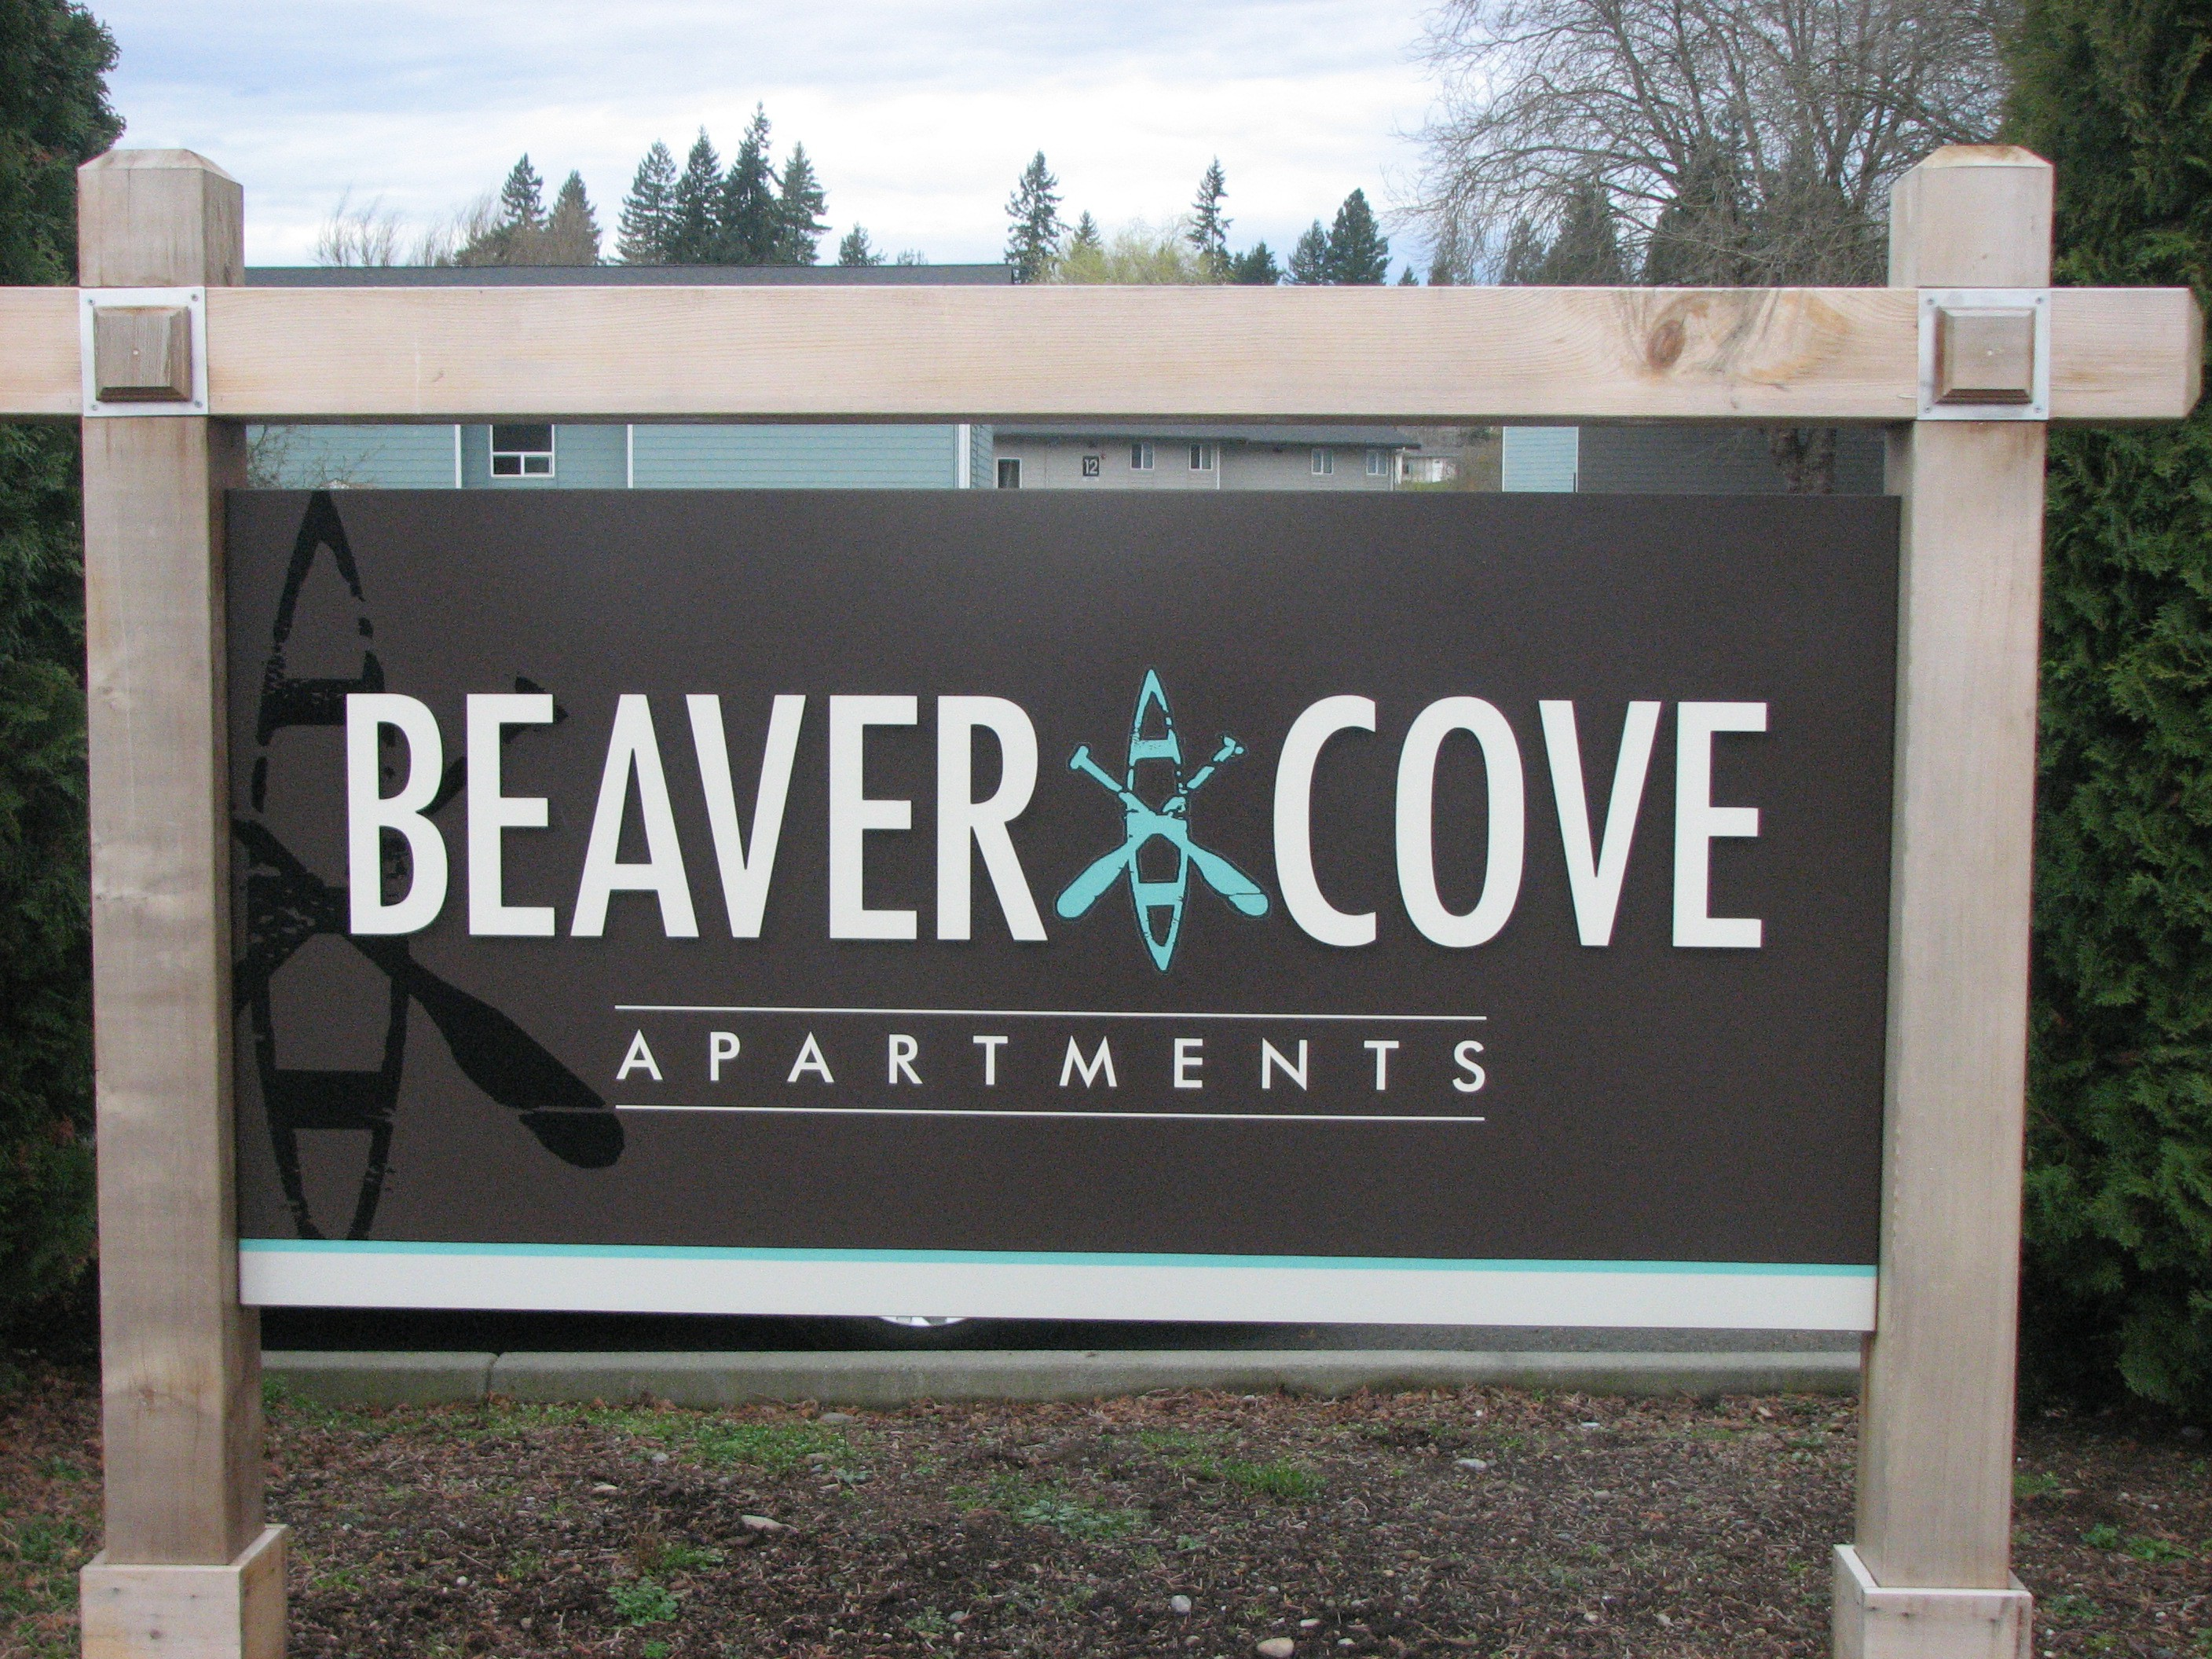 Apartments Near Washington Beaver Cove for Washington Students in , WA